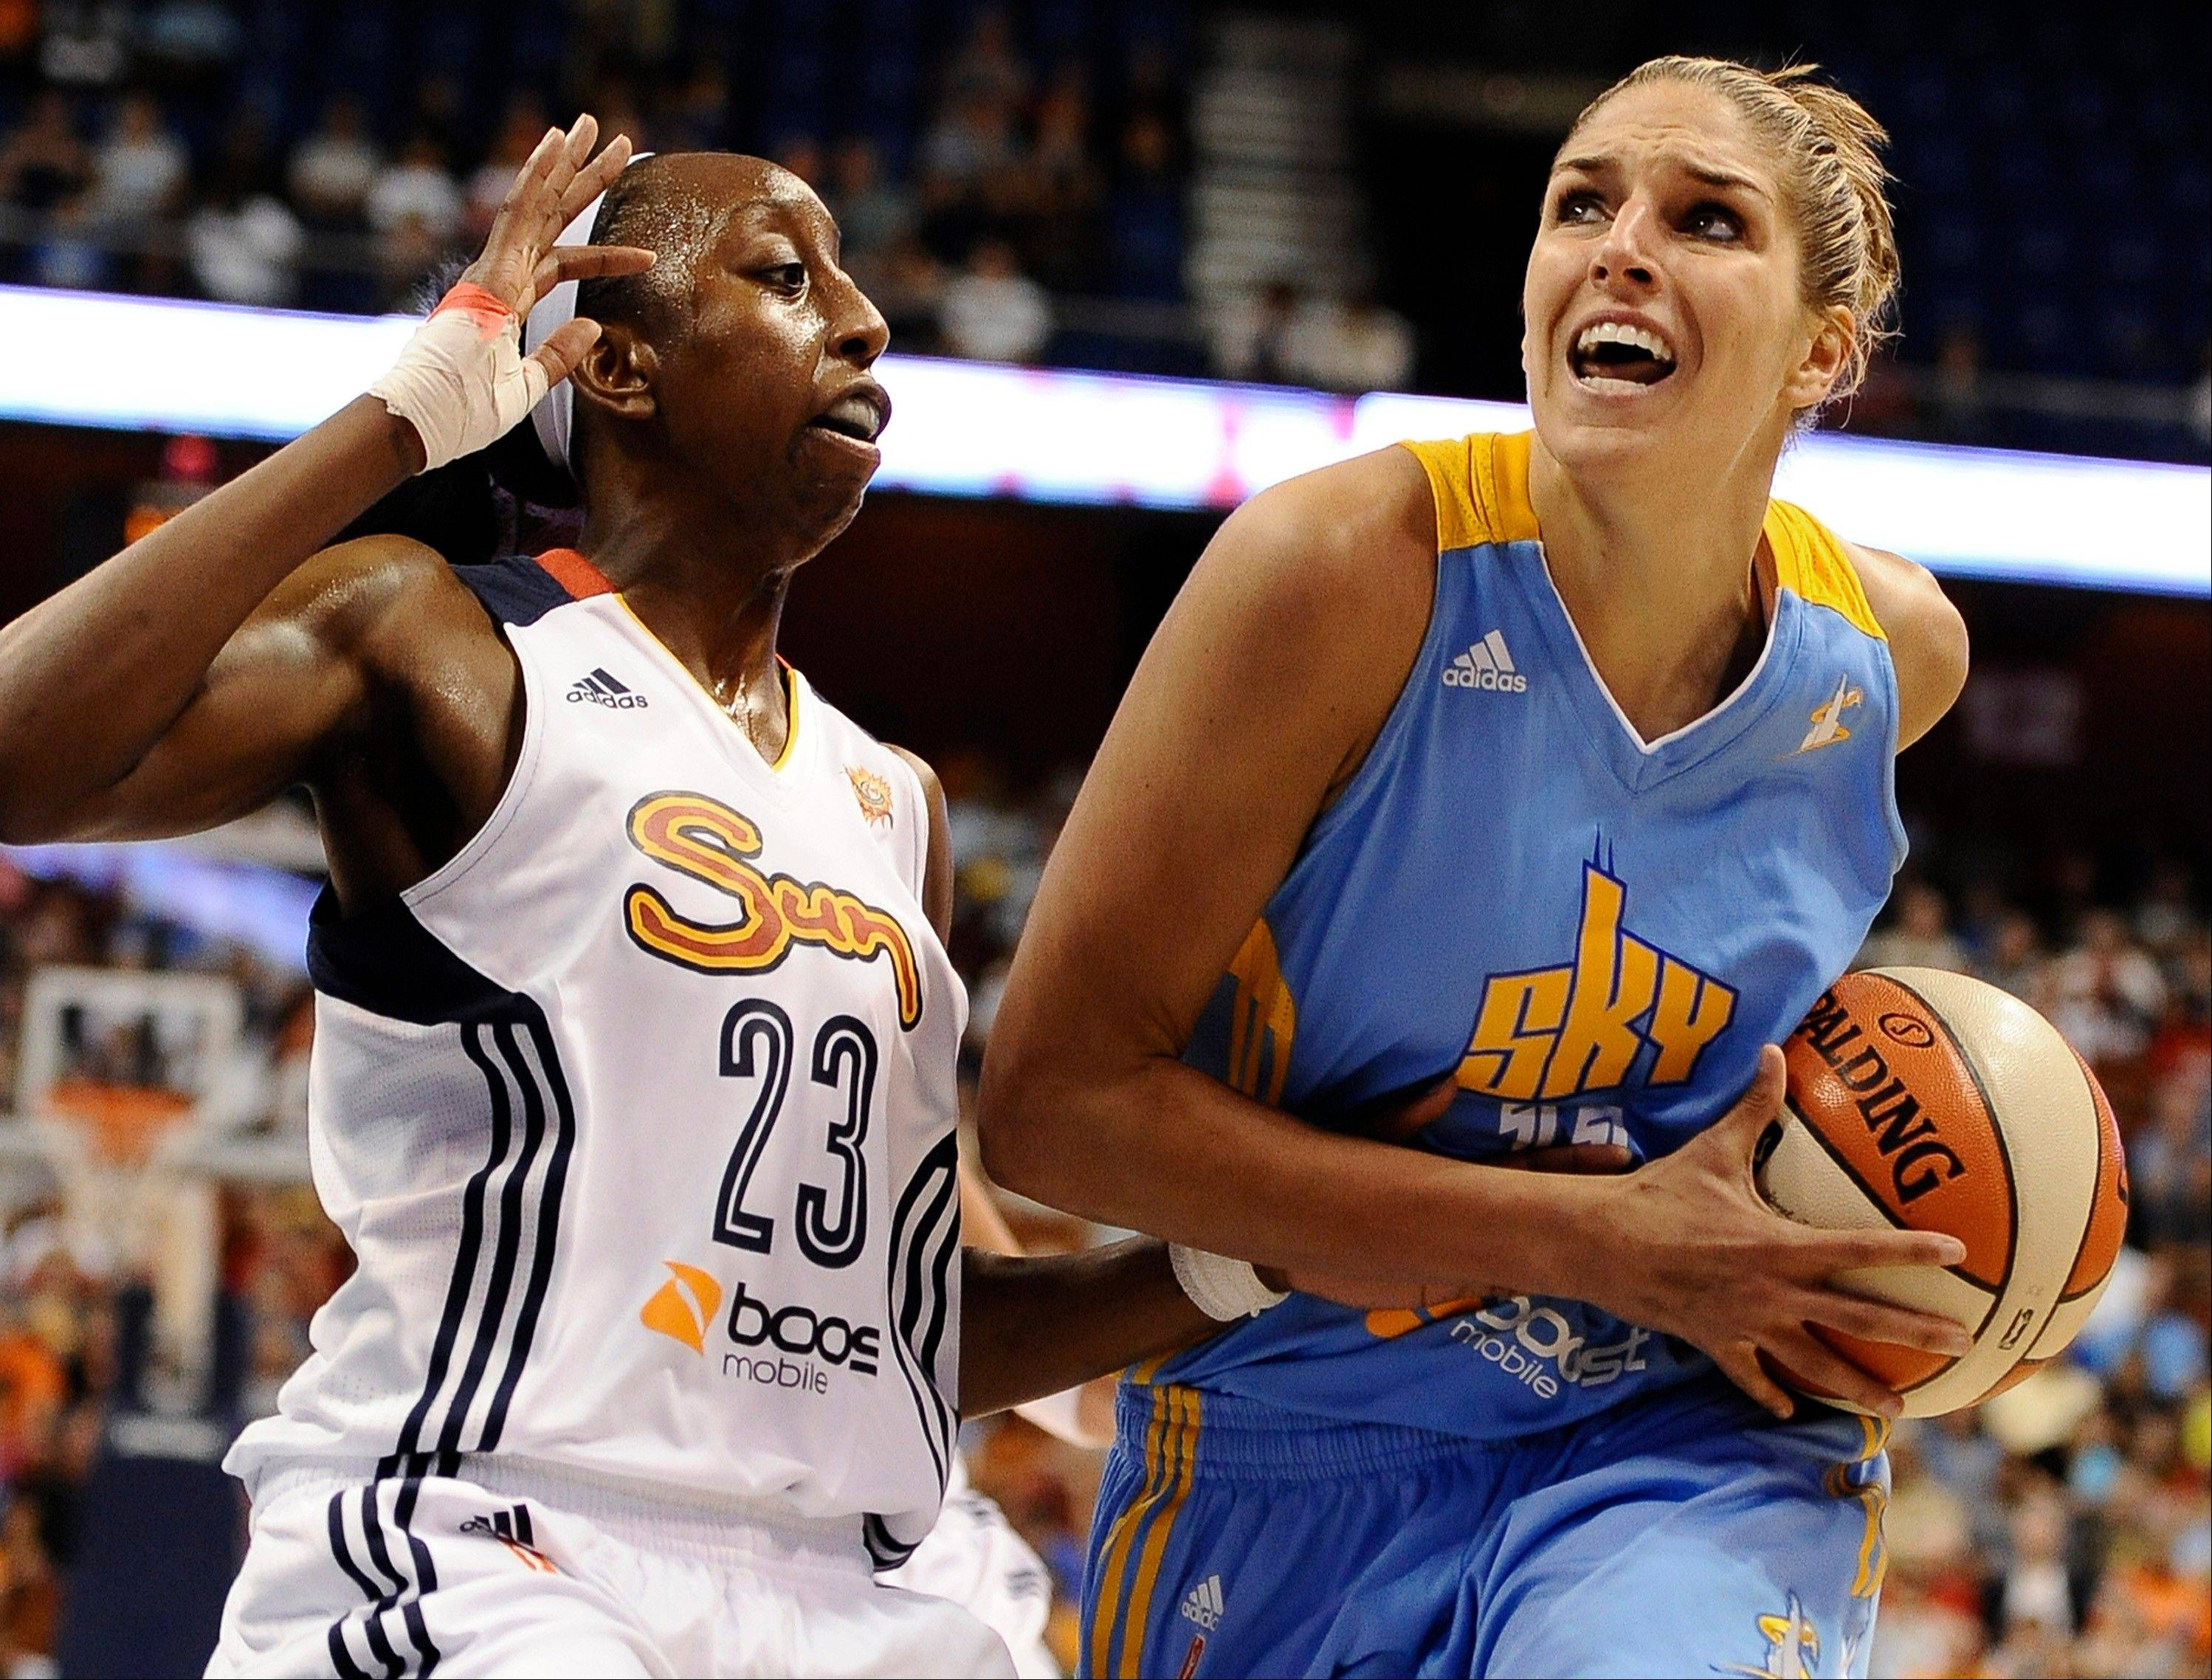 Chicago Sky's Elena Delle Donne, right, drives to the basket while being guarded by Connecticut Sun's Allison Hightower during the first half of a WNBA basketball game in Uncasville, Conn., Friday, July 12, 2013.